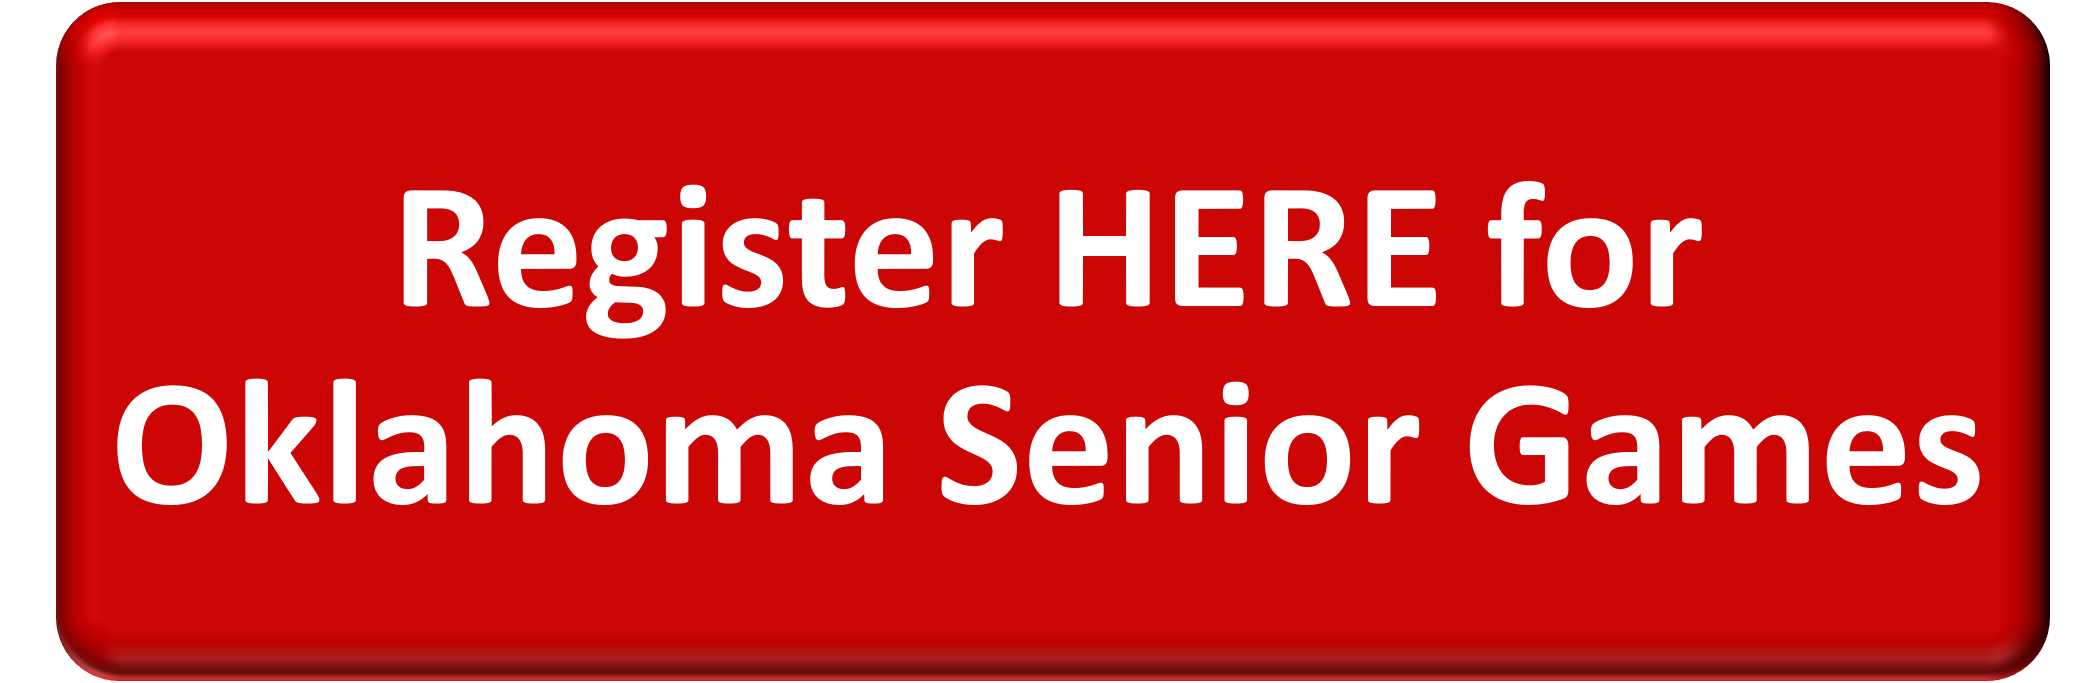 Register Now for Oklahoma Senior Games